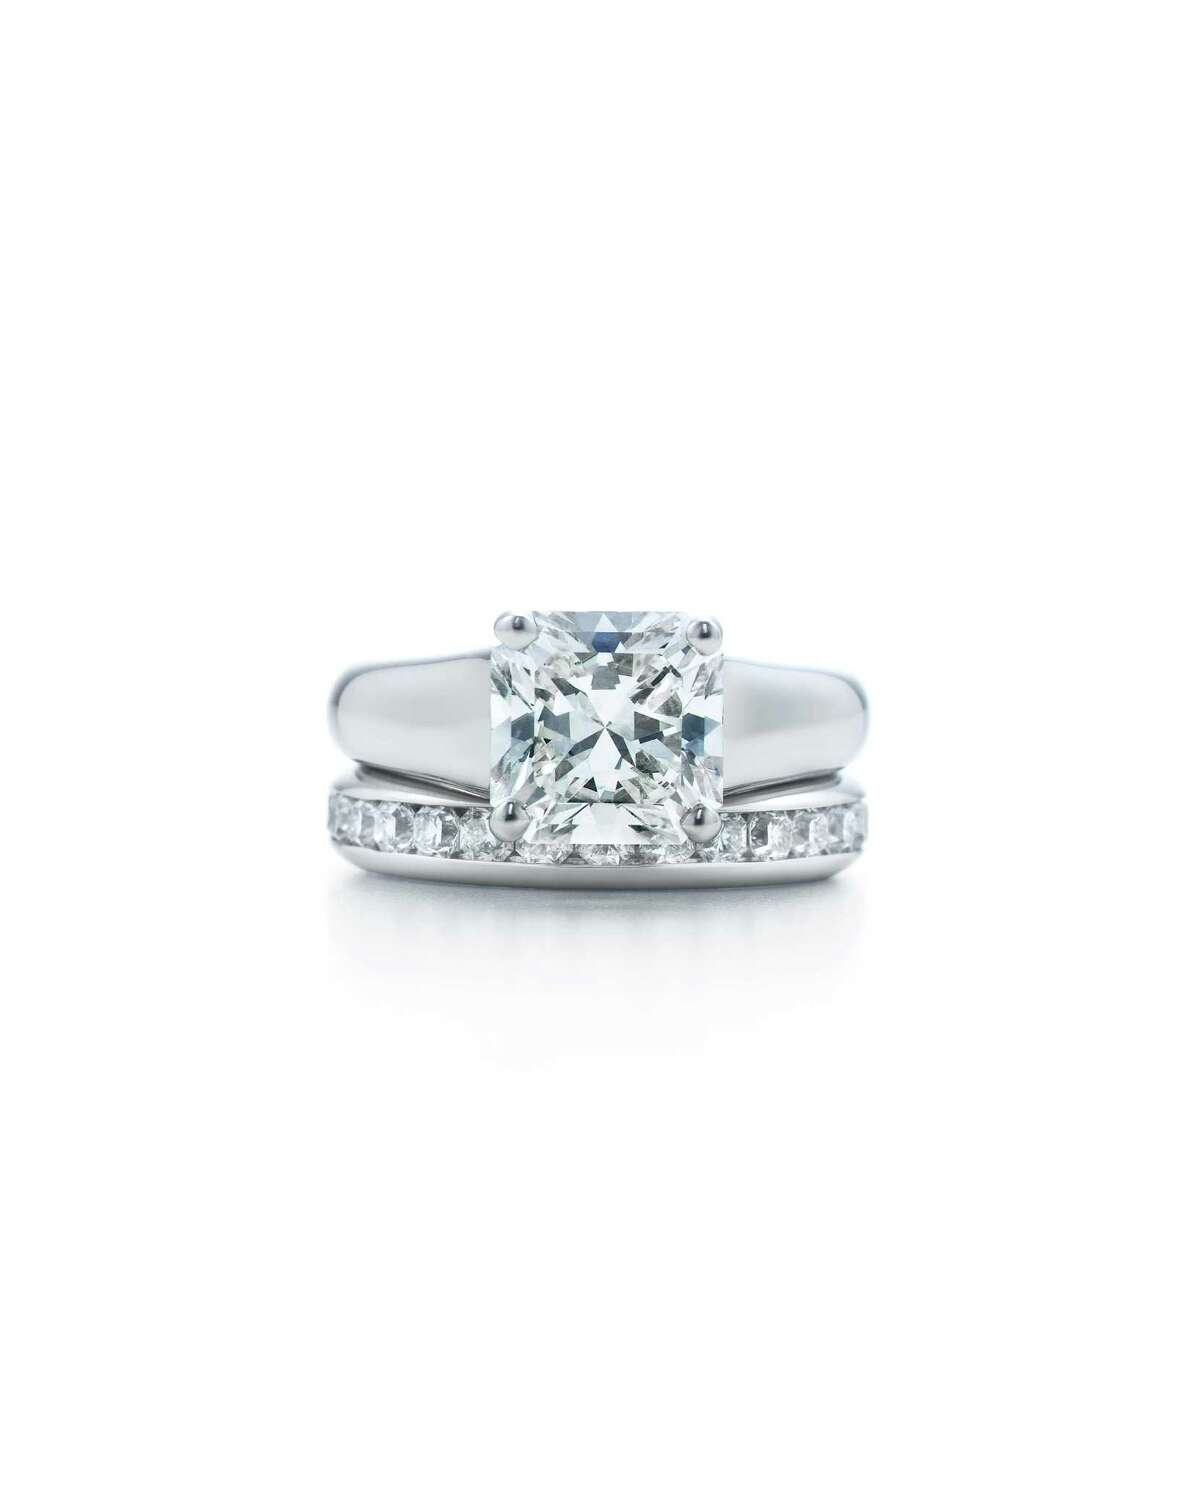 Couples in Arizona spend an average of $6,347 on engagement rings.